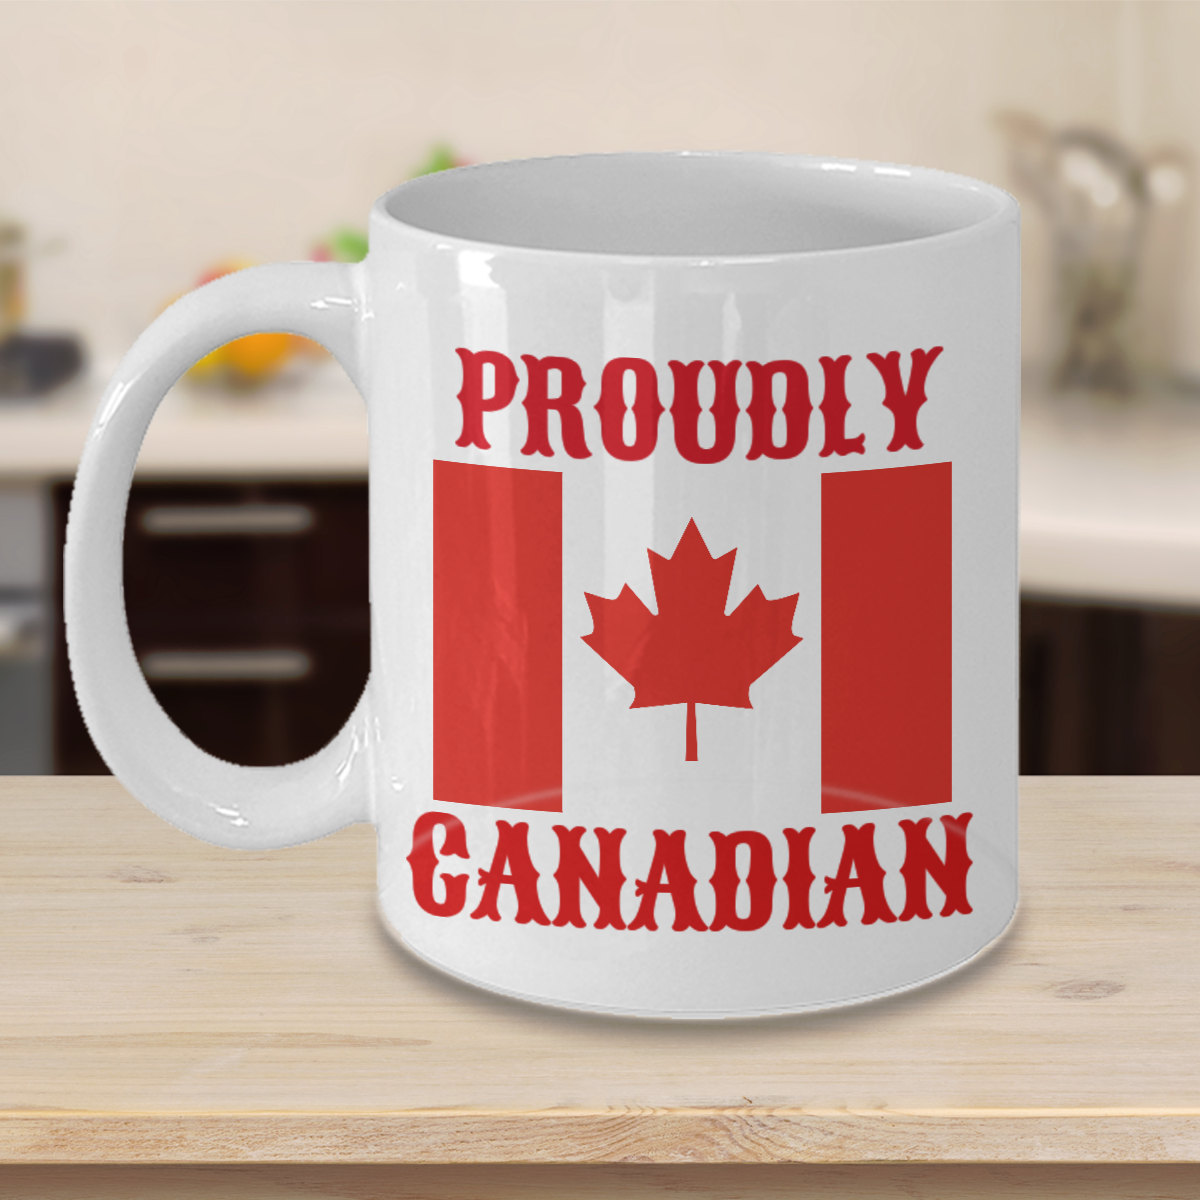 Il Fullxfull1167379235 Q4ur Previous Proudly Canadian Personalized Mug Birthday Gift For Coffee Lover